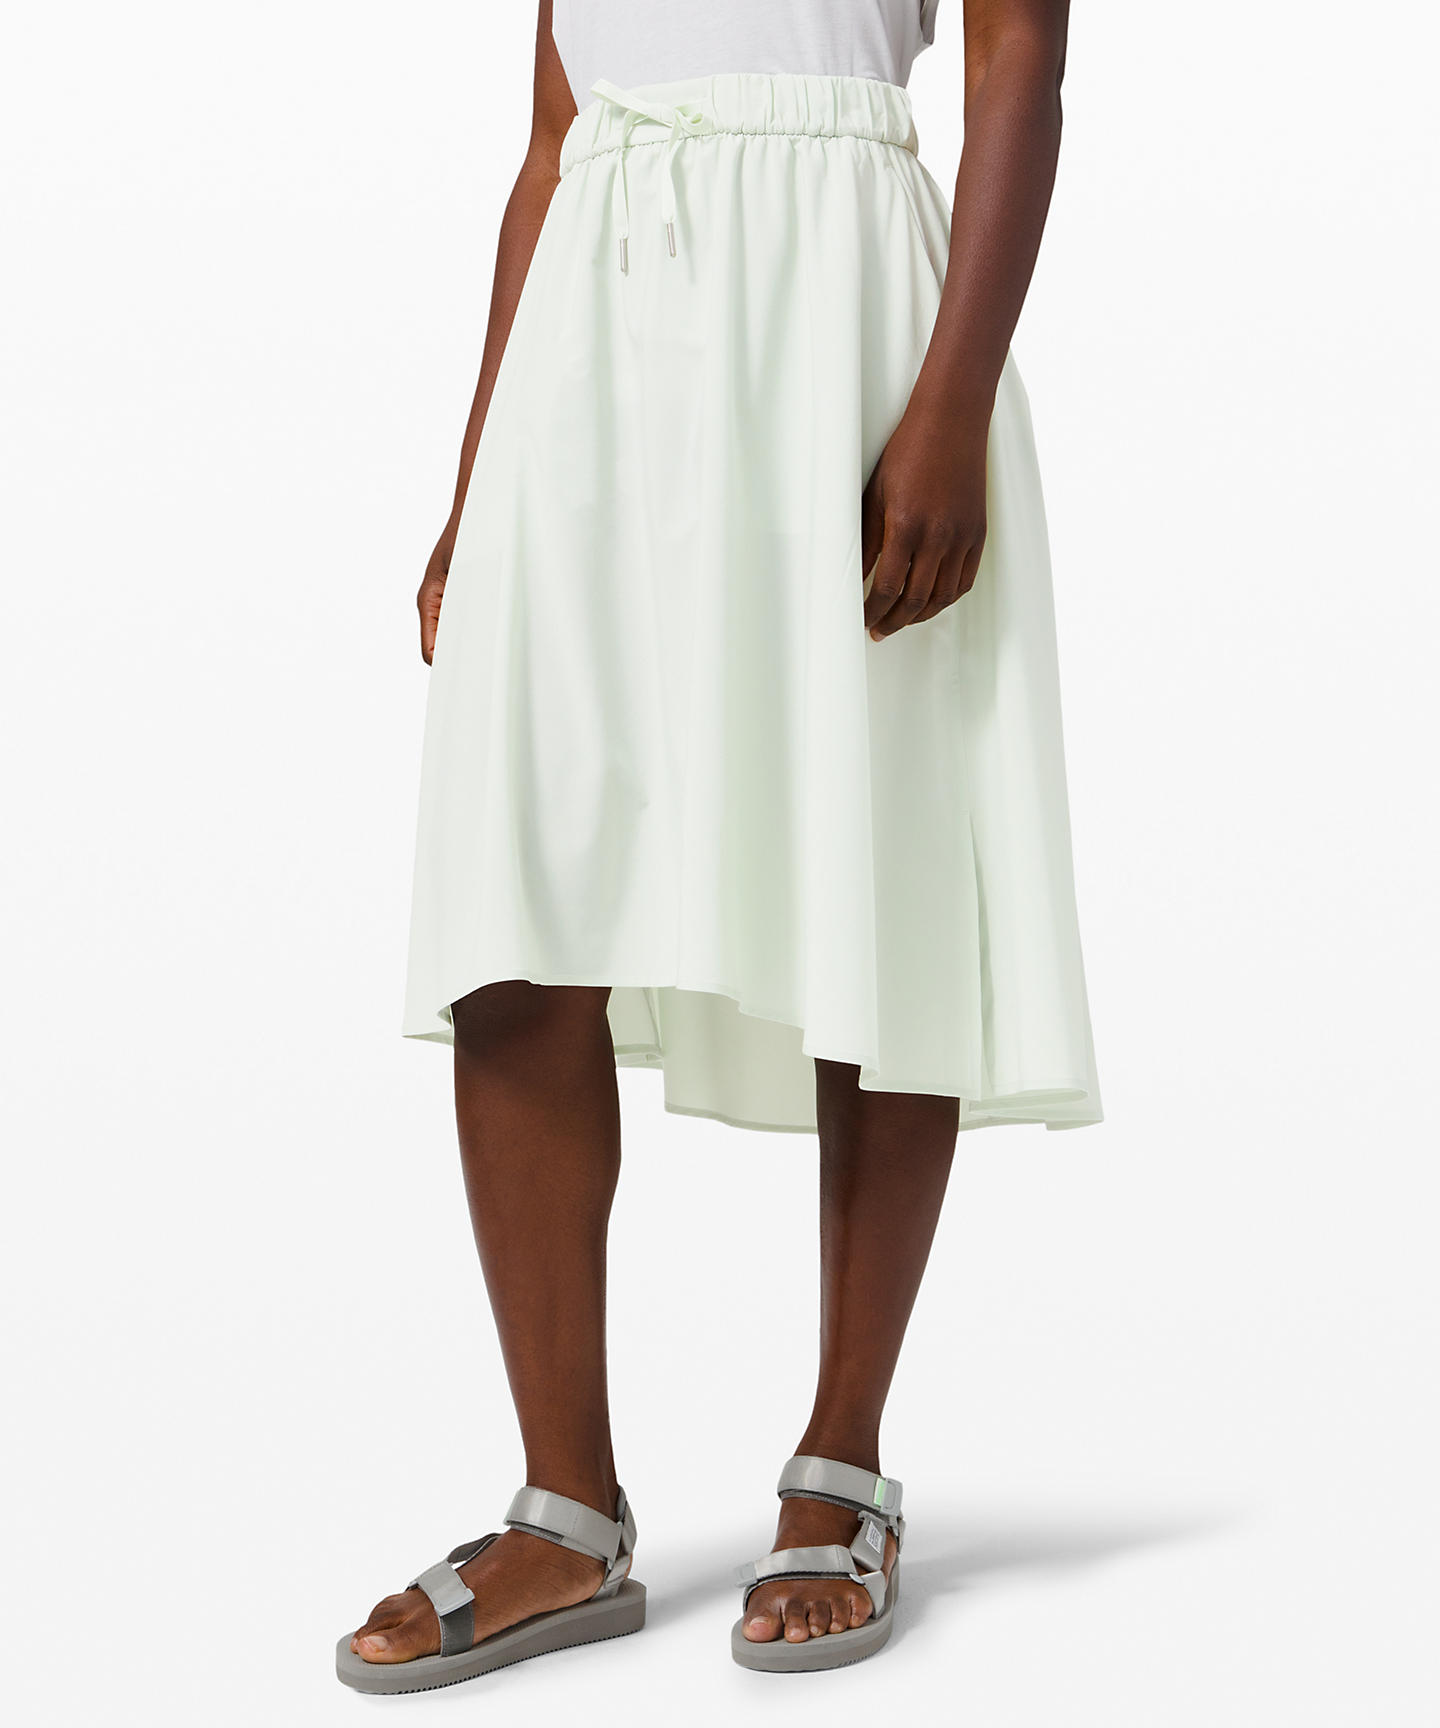 Time To Flounce Skirt, New At Lululemon Cute Work From Home Gear